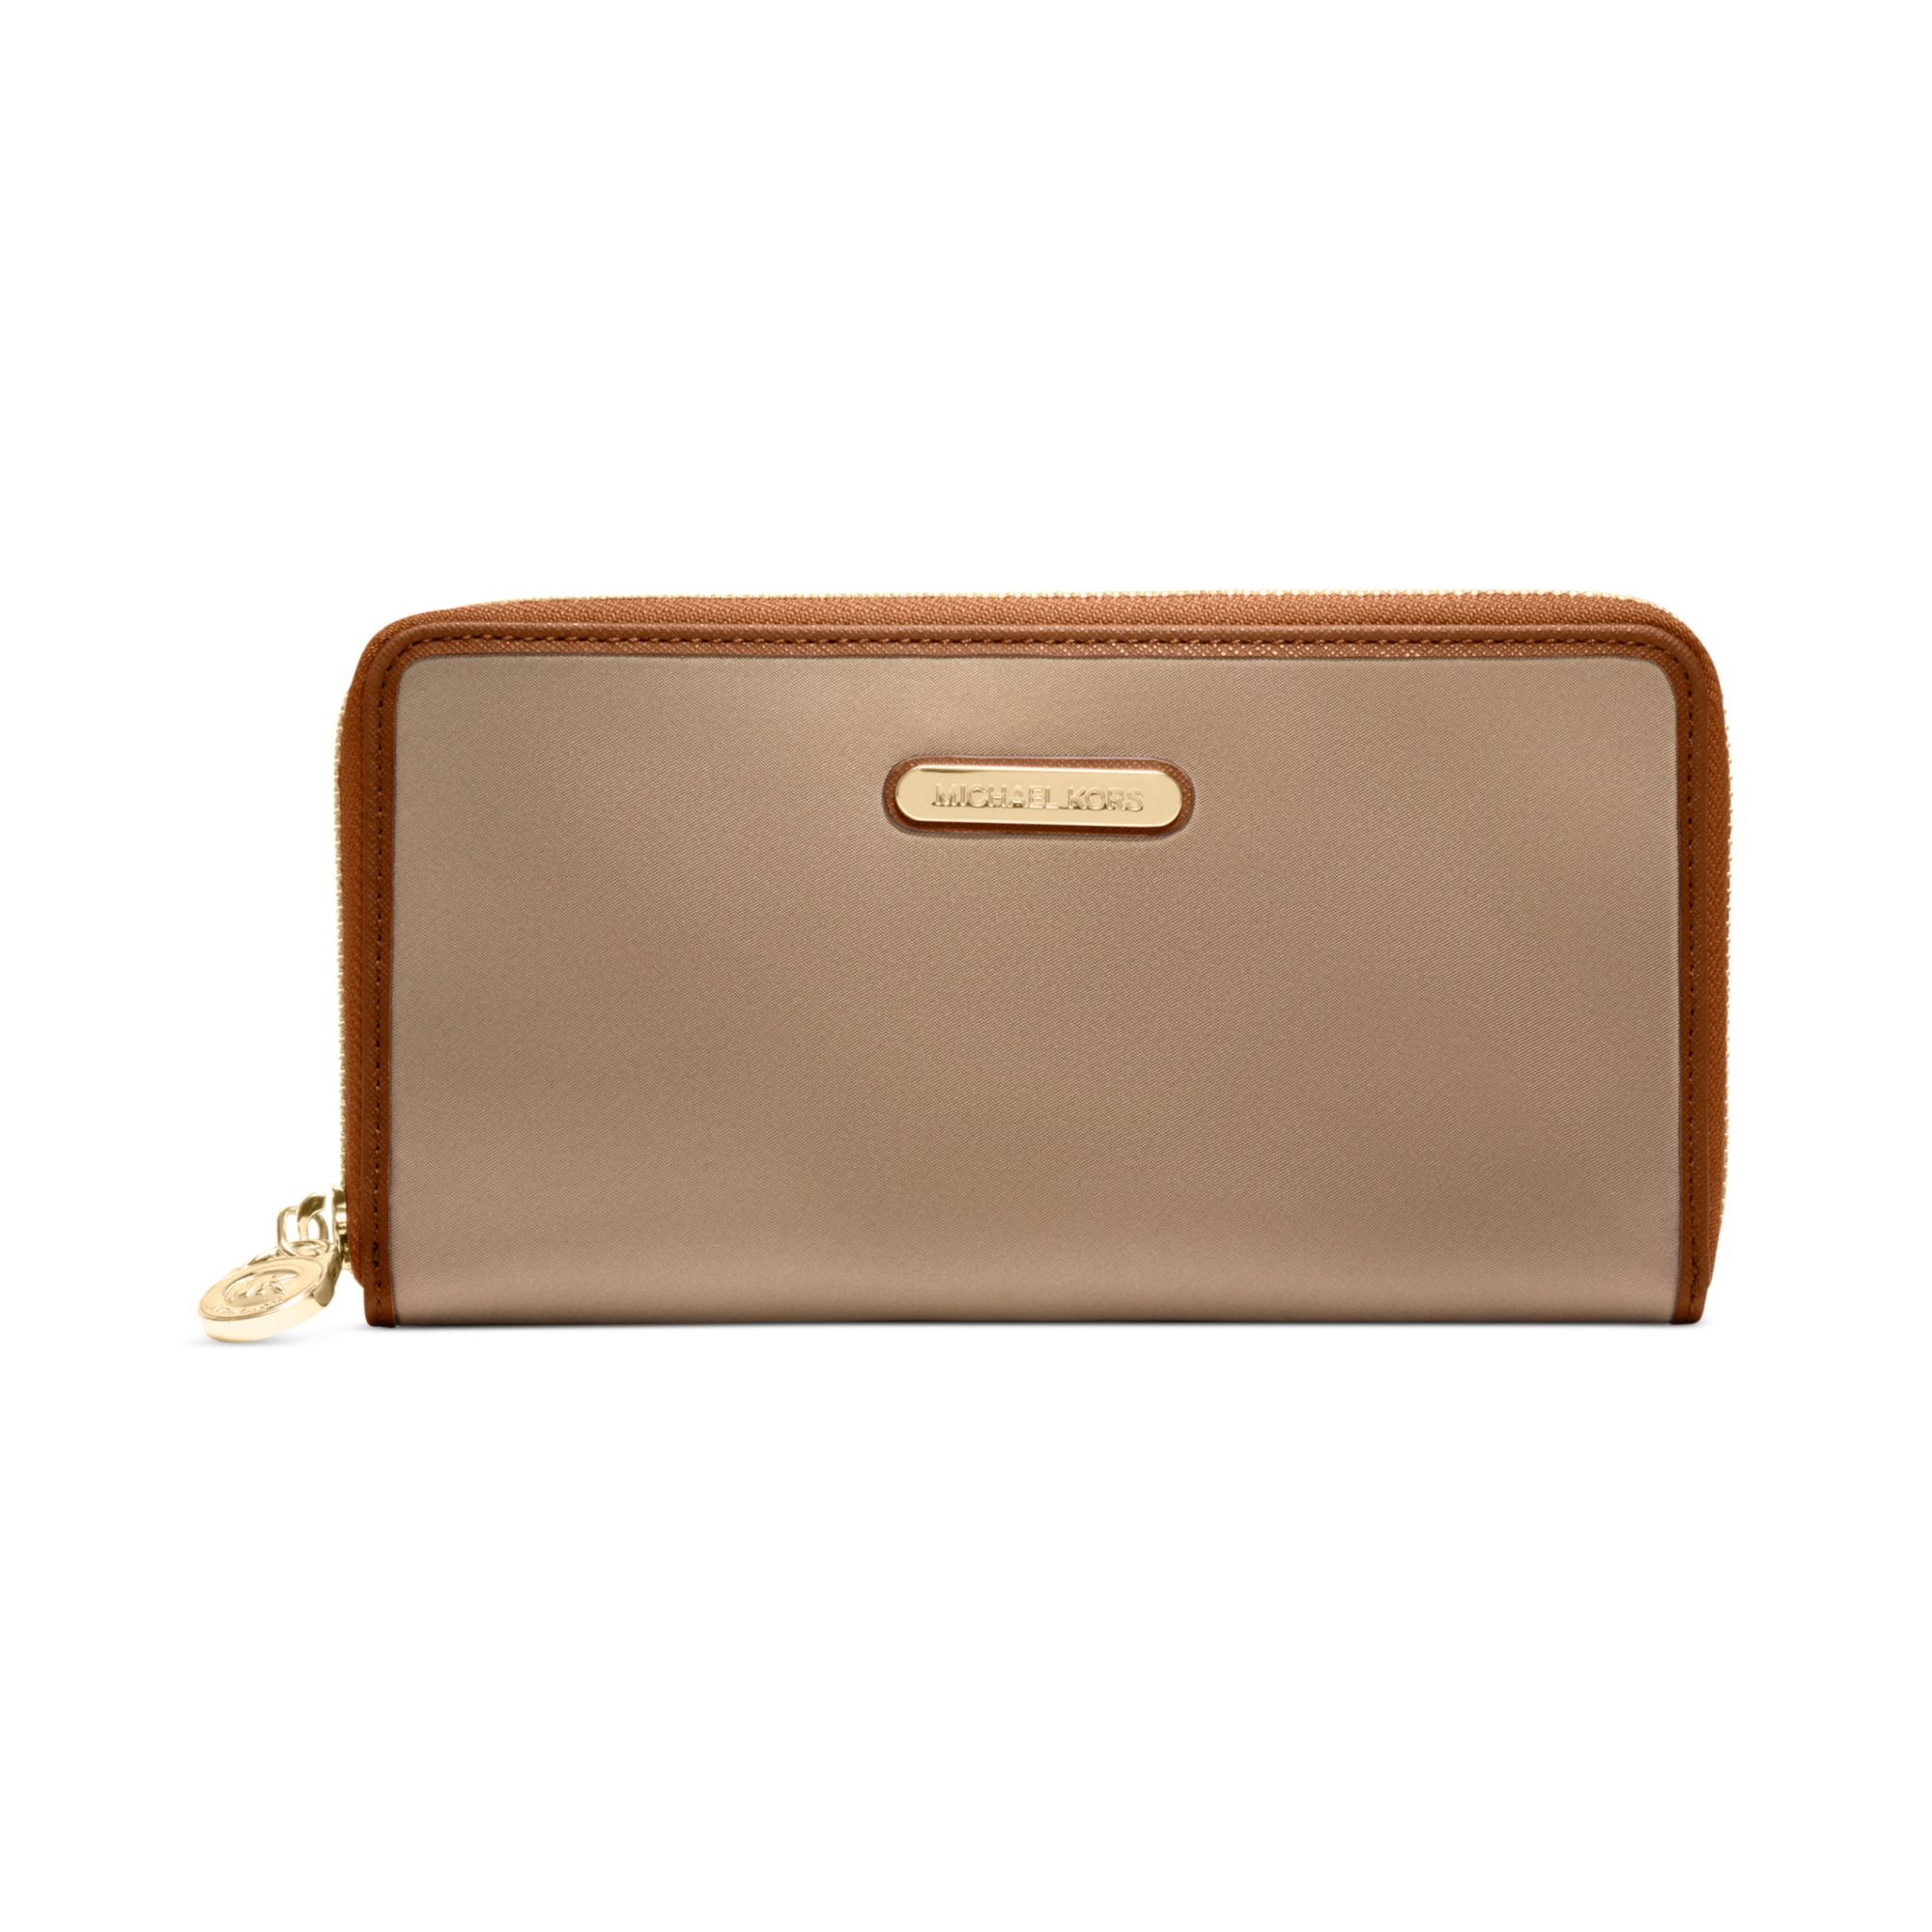 a66df9a45a13 ... ireland lyst michael kors kempton zip around continental wallet in  natural ef2cc d3360 ...